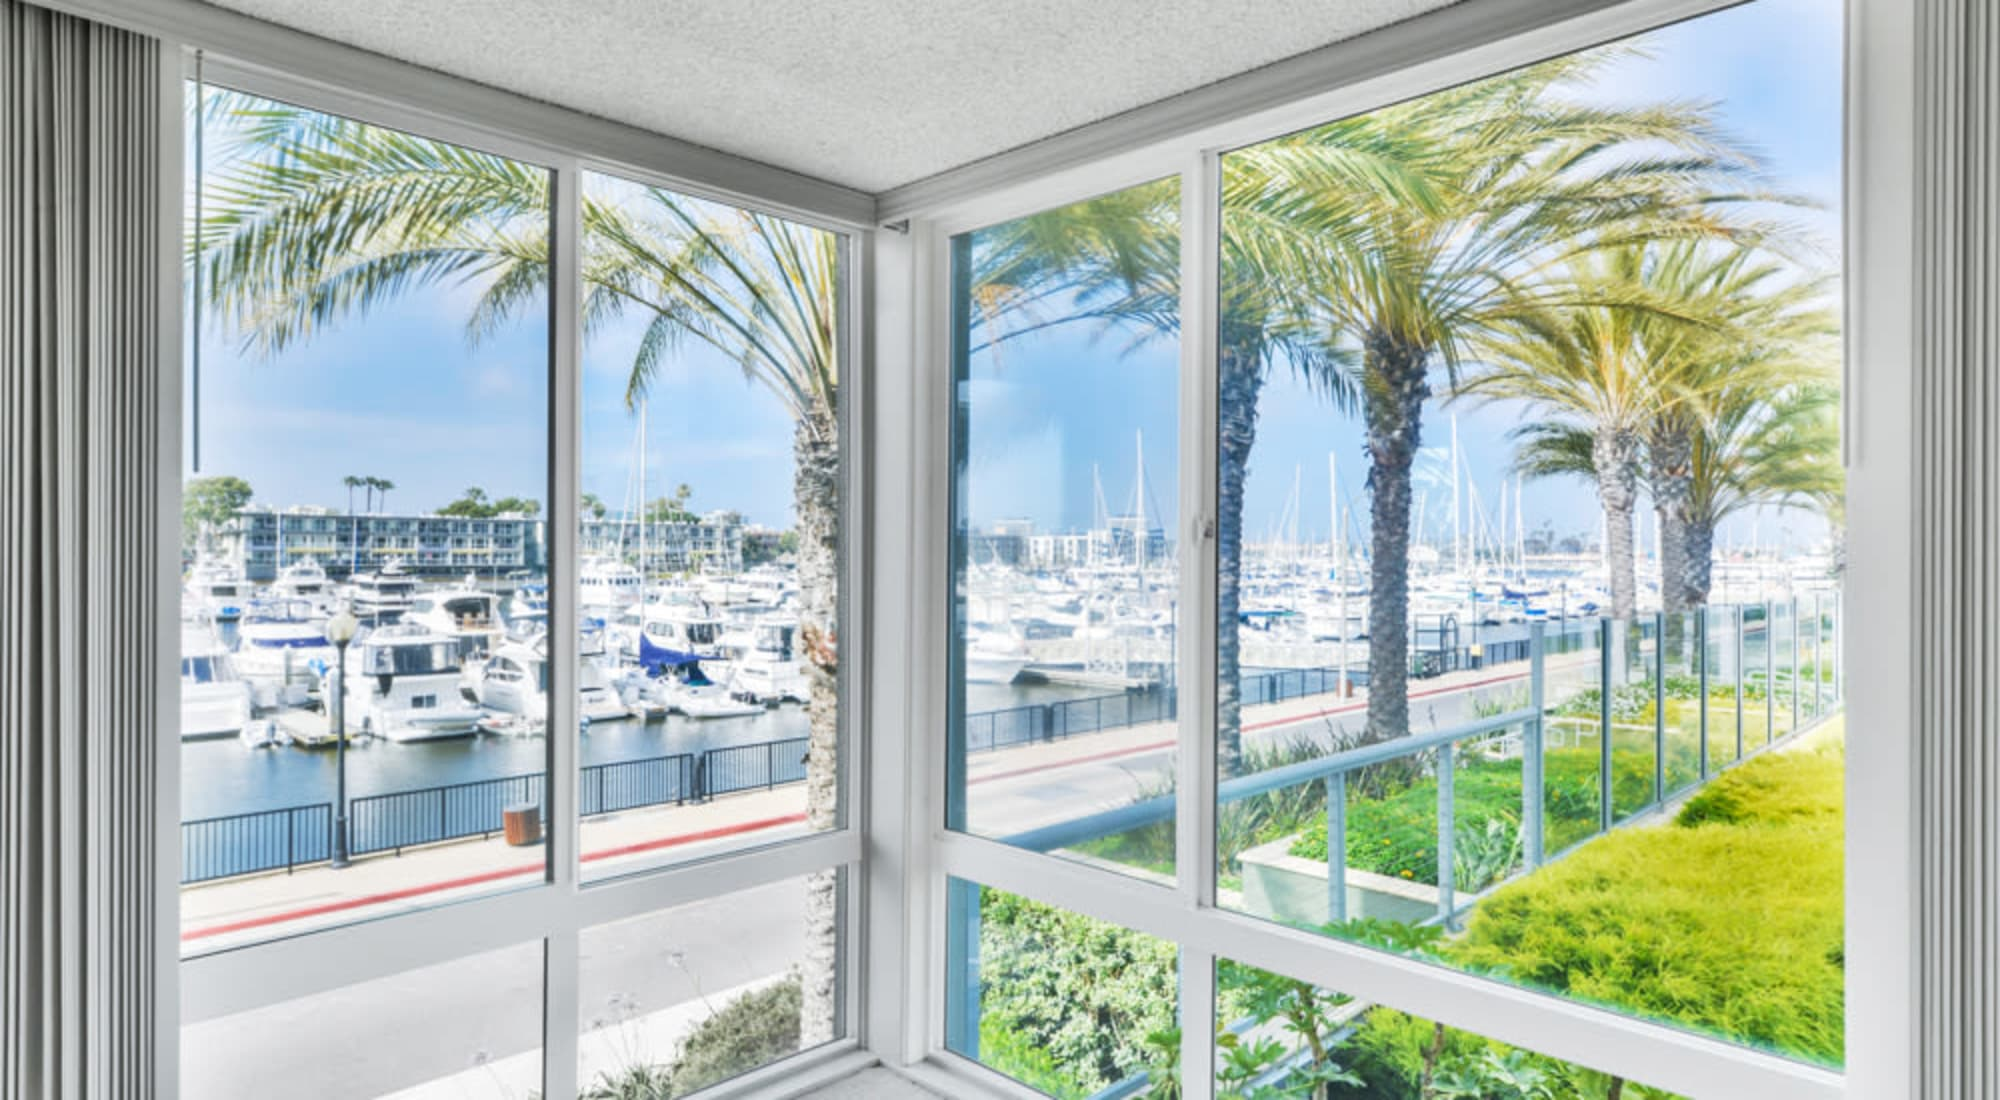 Great views of the marina from a model luxury home at Waters Edge at Marina Harbor in Marina Del Rey, California